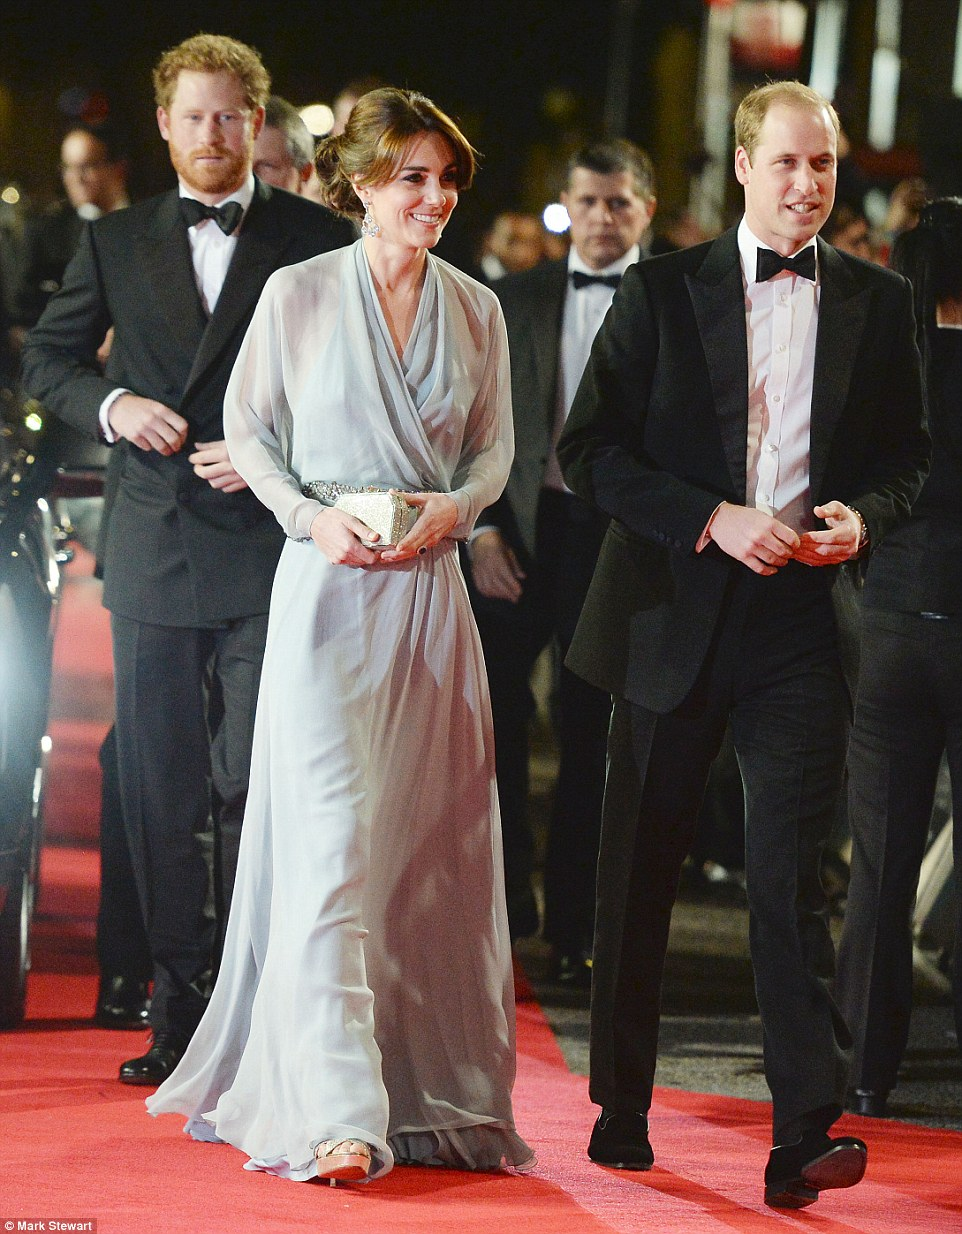 2DCFFB4500000578-3290524-The Duchess opted for a Jenny Packham gown for the occasion choo-a-16 1445894409581 d8fa5